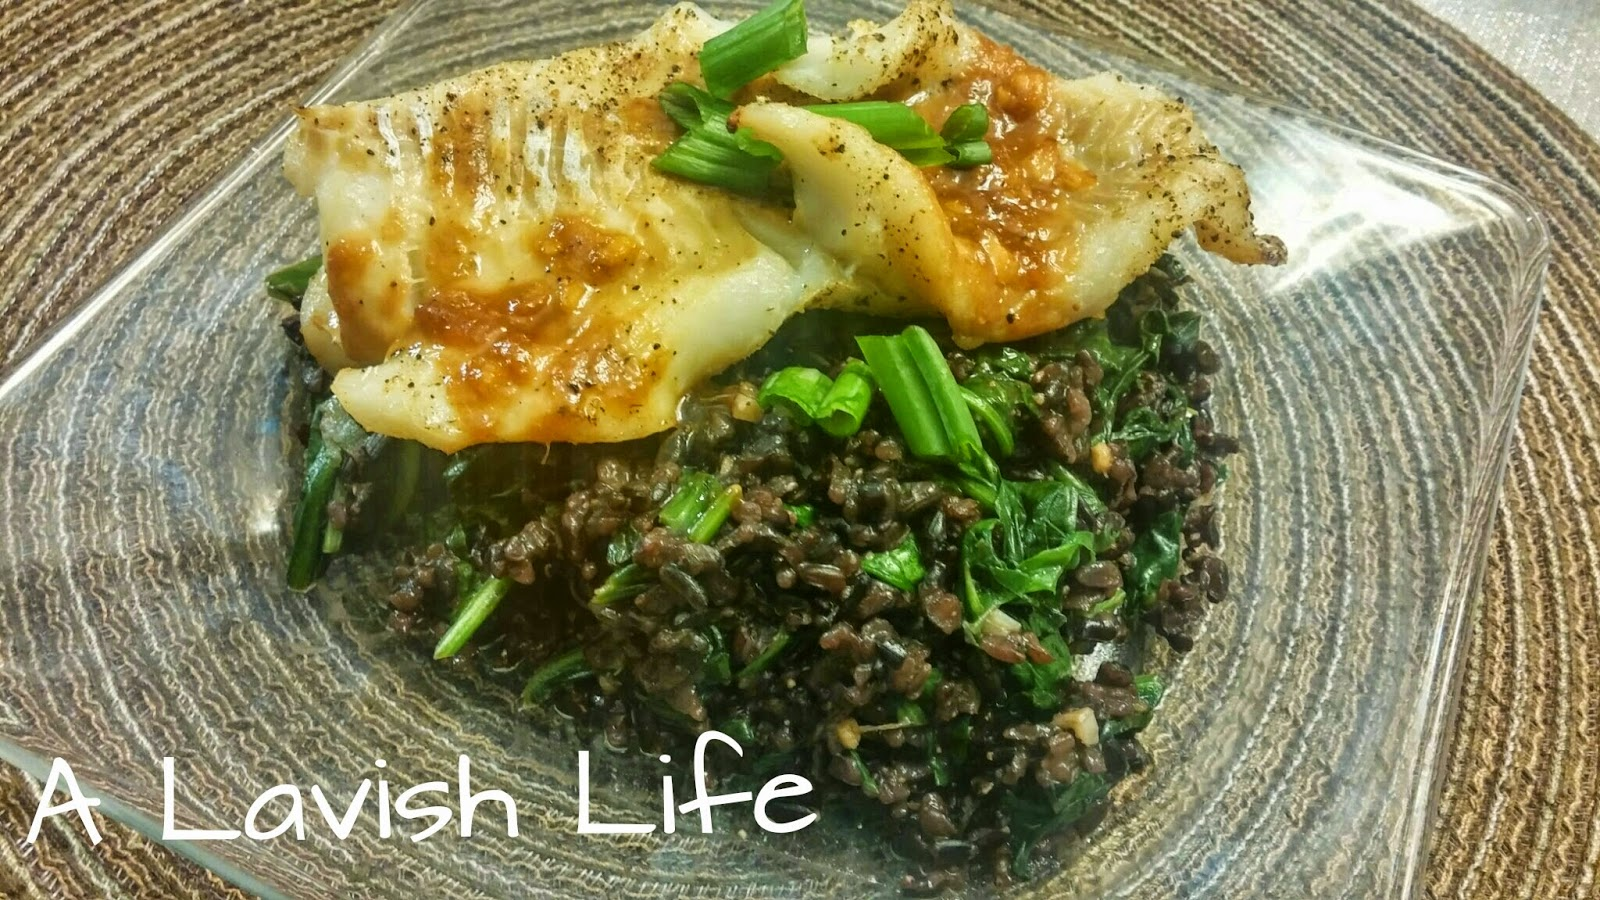 Blue apron yuzu cod - I Enjoyed The Black Rice The Texture Was Different That White Or Brown Rice But I Enjoyed It It Really Beefed Up The Meal And Made It More Hearty